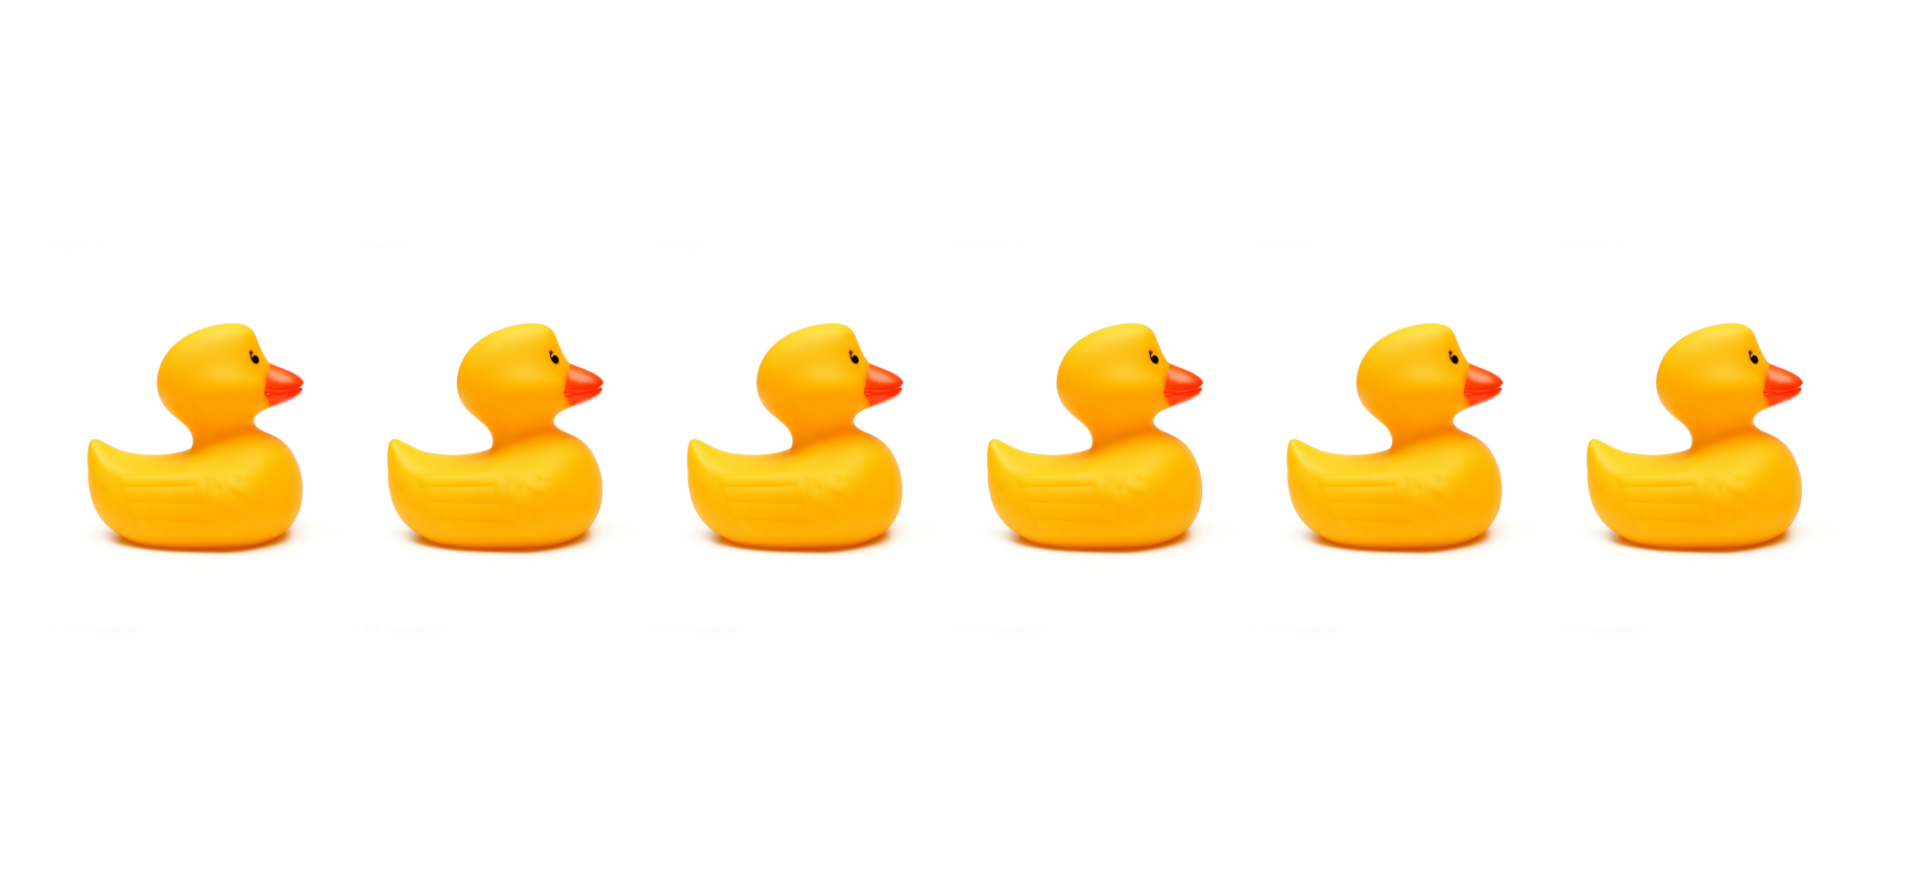 Rubber ducks in line